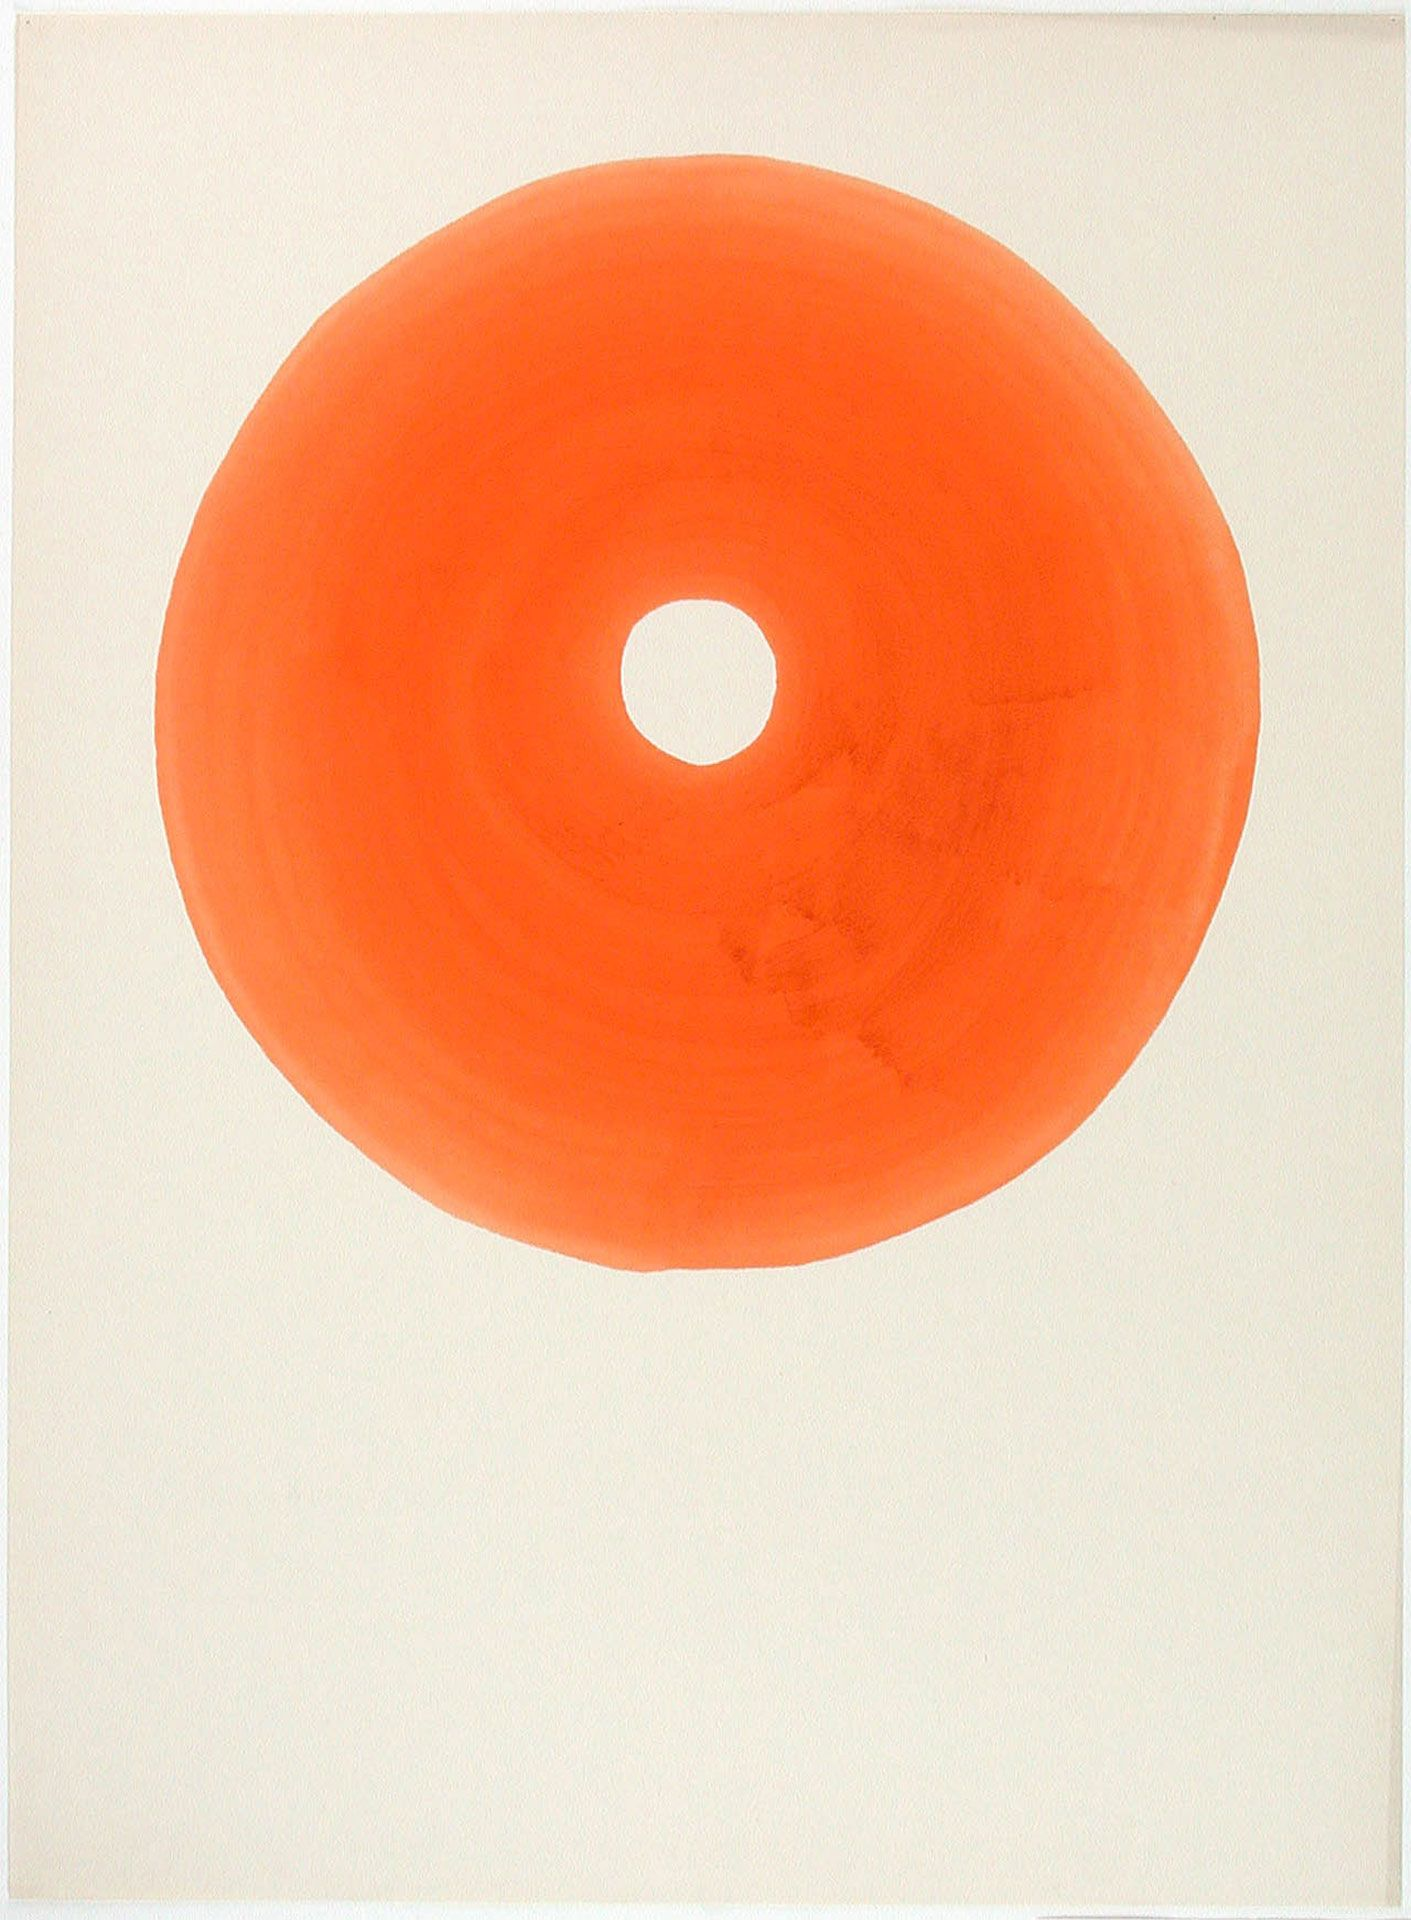 Louis Archambault, Untitled [Orange Circle], 1971. MMFA, gift of the artist in memory of his wife, Mariette.